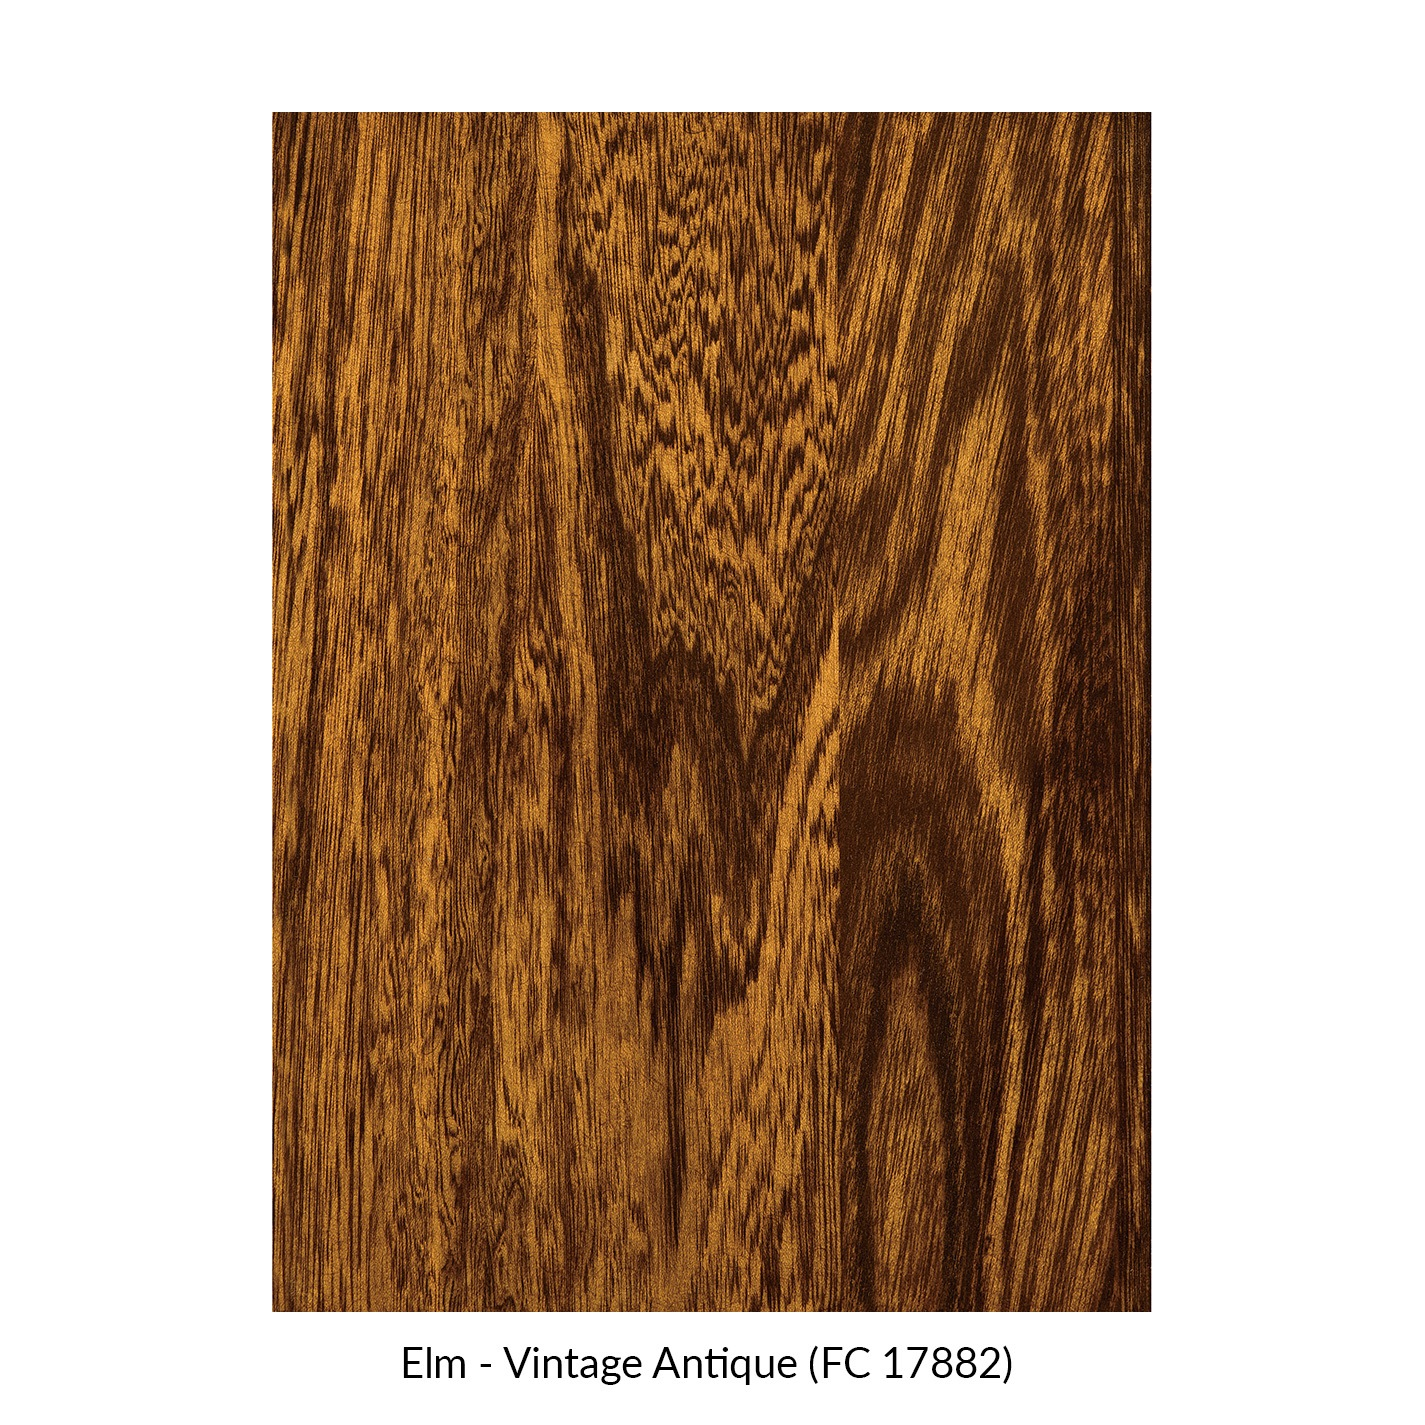 spectrum-elm-vintage-antique-fc-17882.jpg